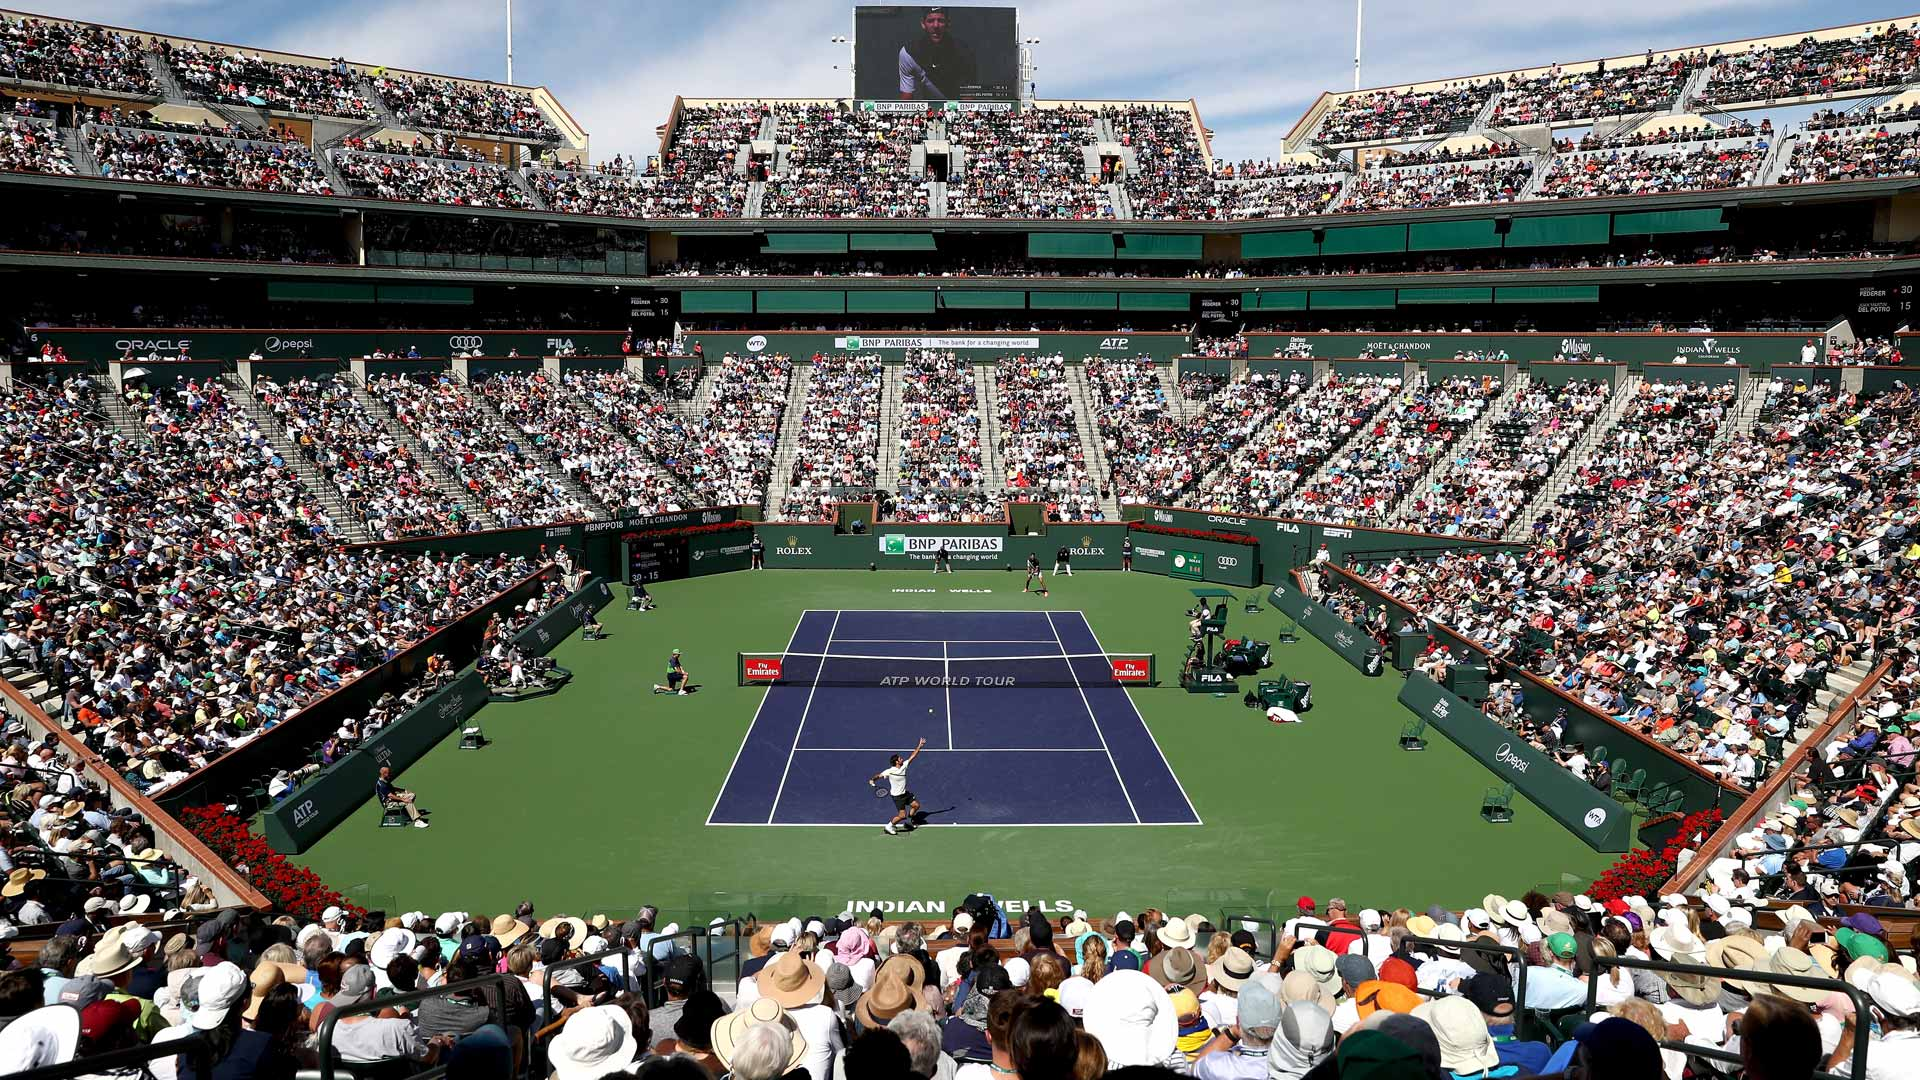 bnp paribas seating guide 2019 bnp paribas open tickets championship tennis tours. Black Bedroom Furniture Sets. Home Design Ideas